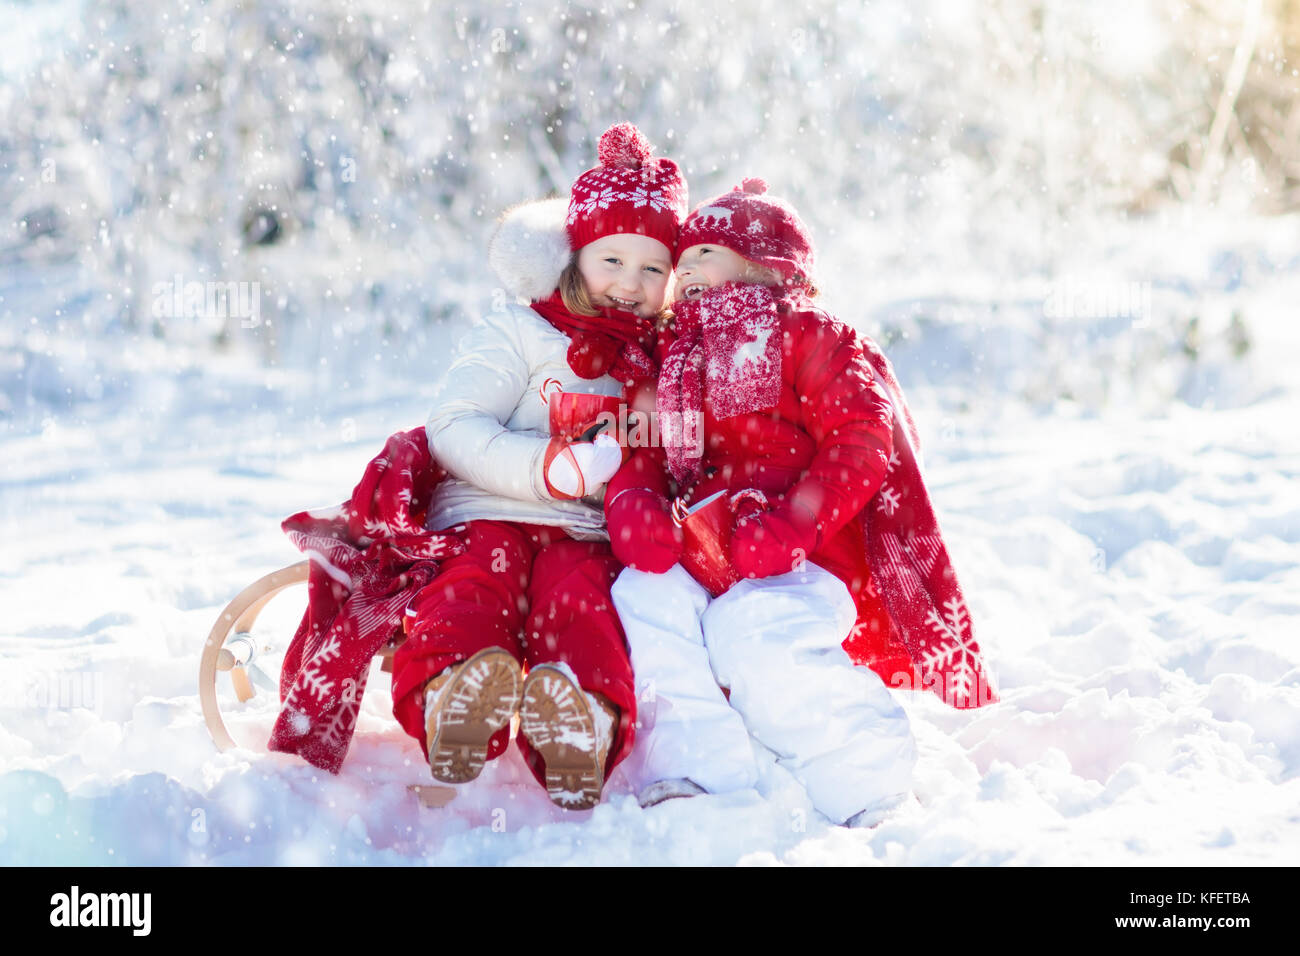 Christmas Vacation Sled.Kids Sledding In Winter Forest Children Drink Hot Chocolate